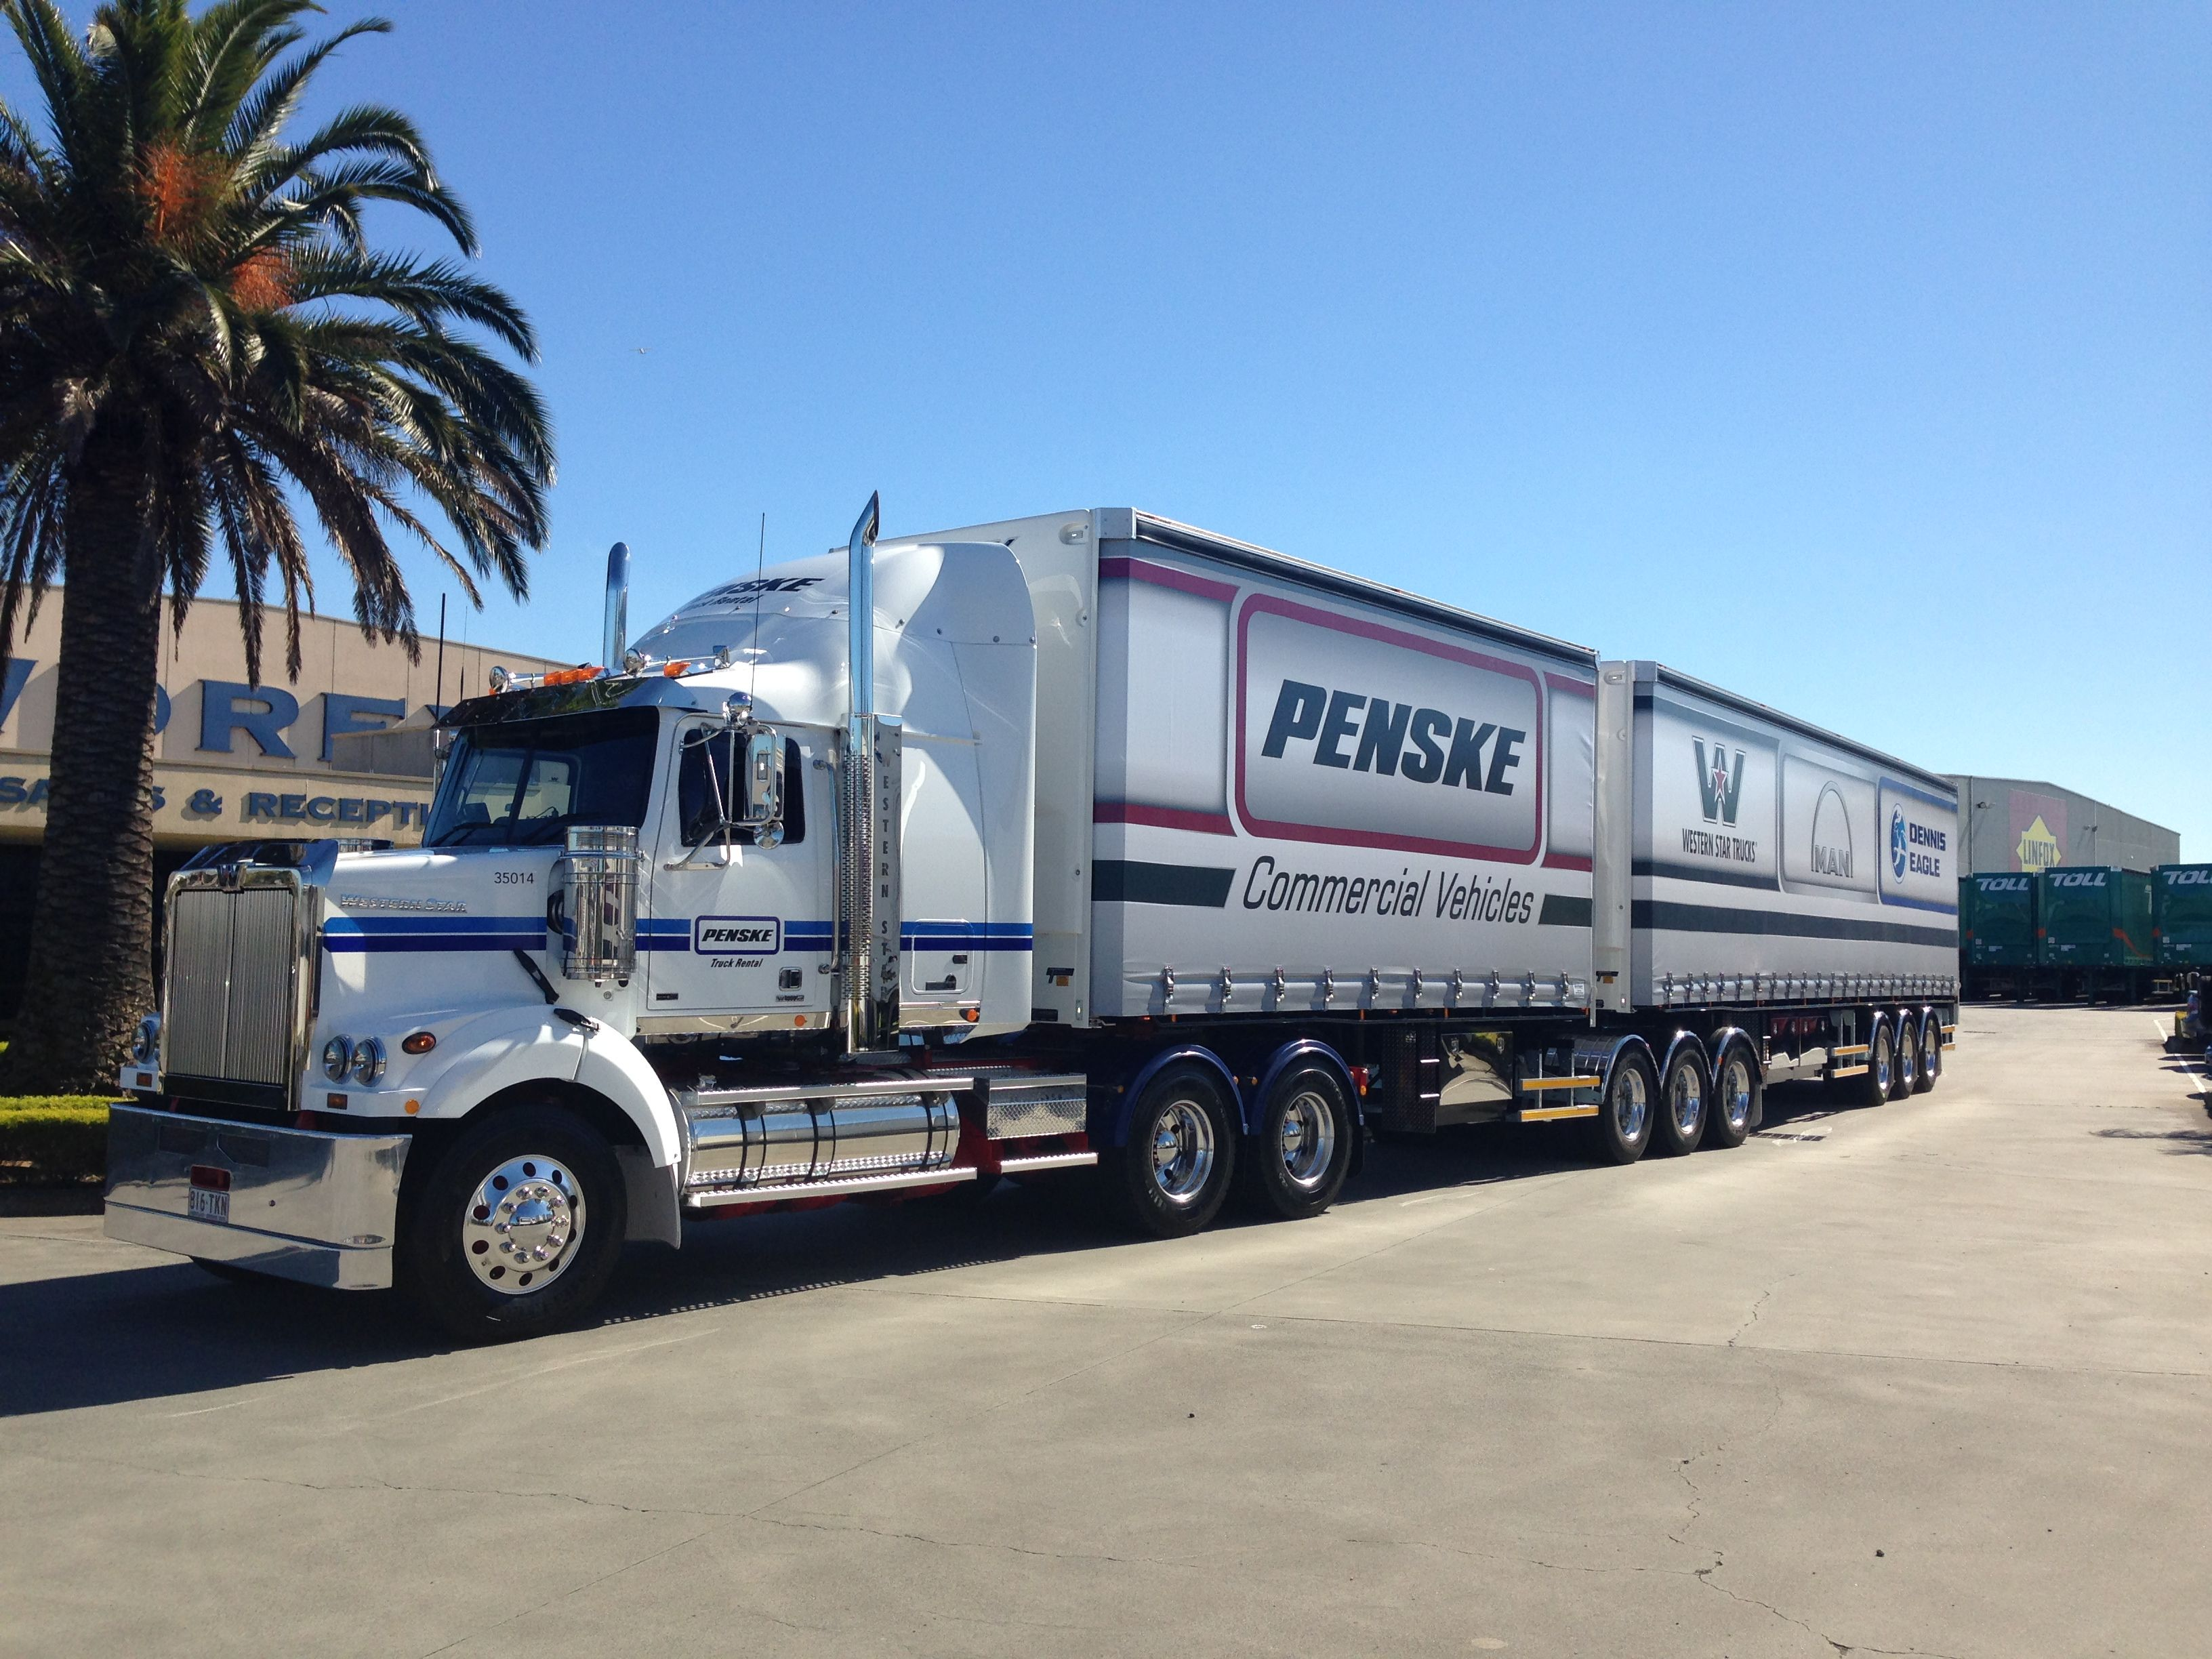 A penske truck rental prime mover from western star picks up new promotional trailers in